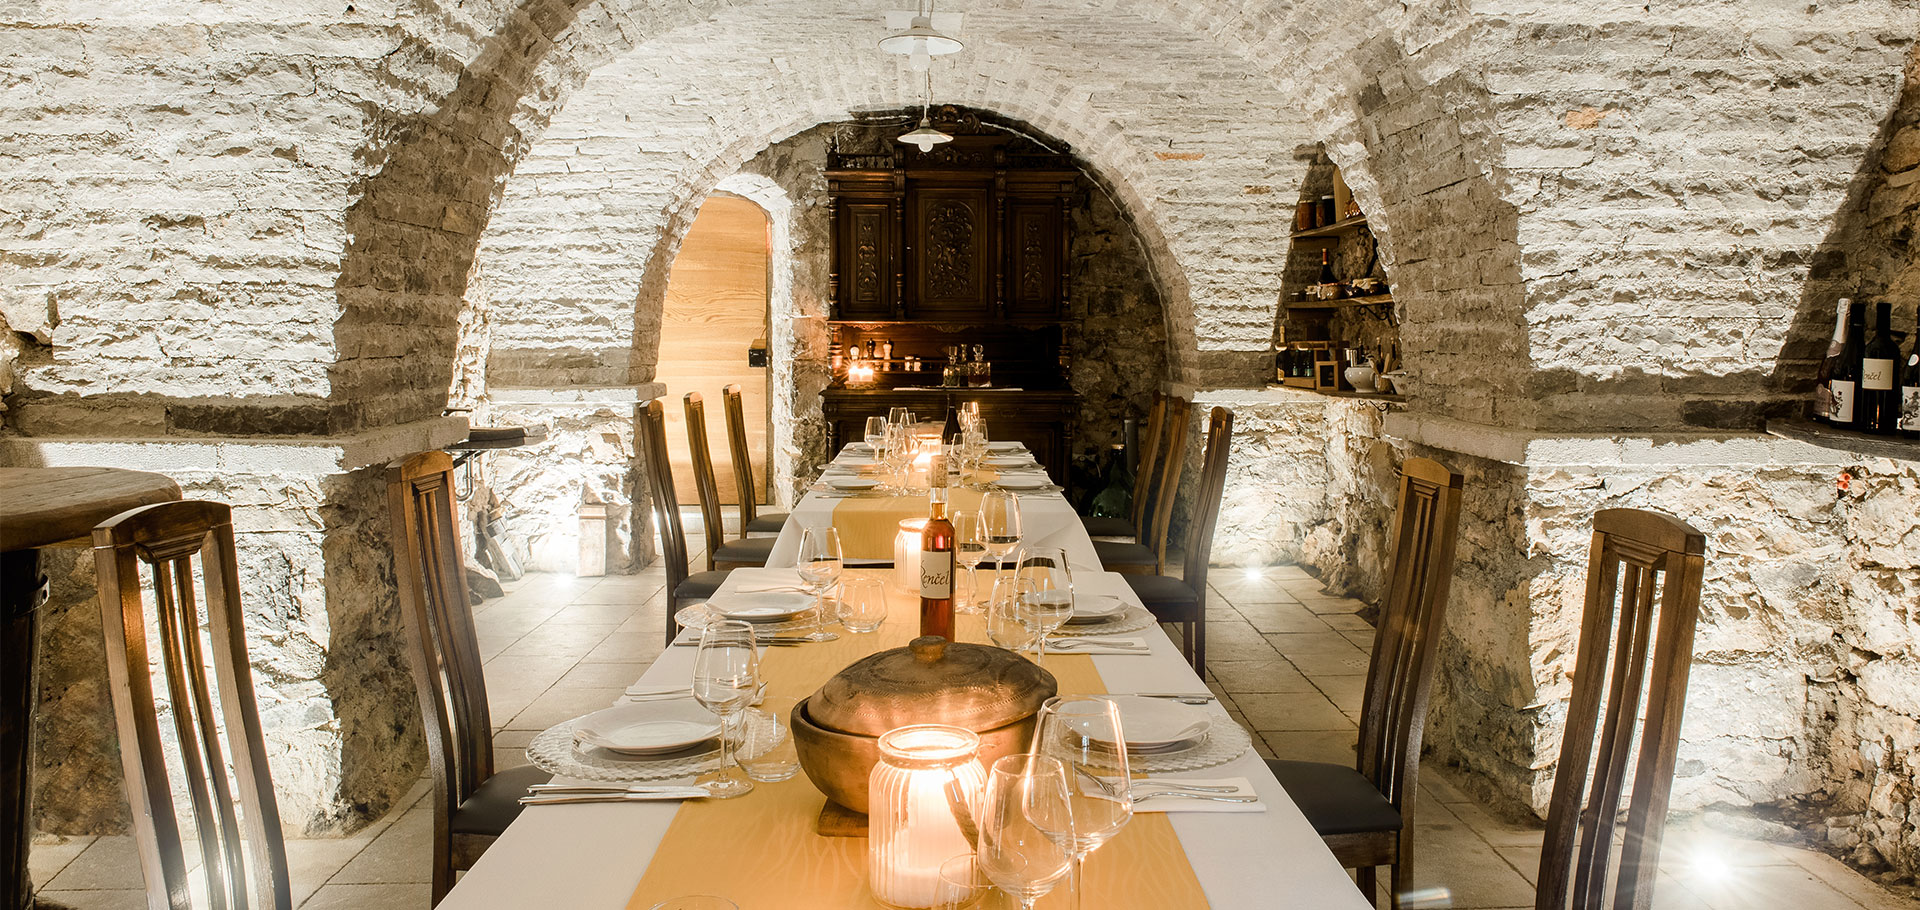 Wine Cellar Private Dining Asa Residence Private Villa Kras Slovenia